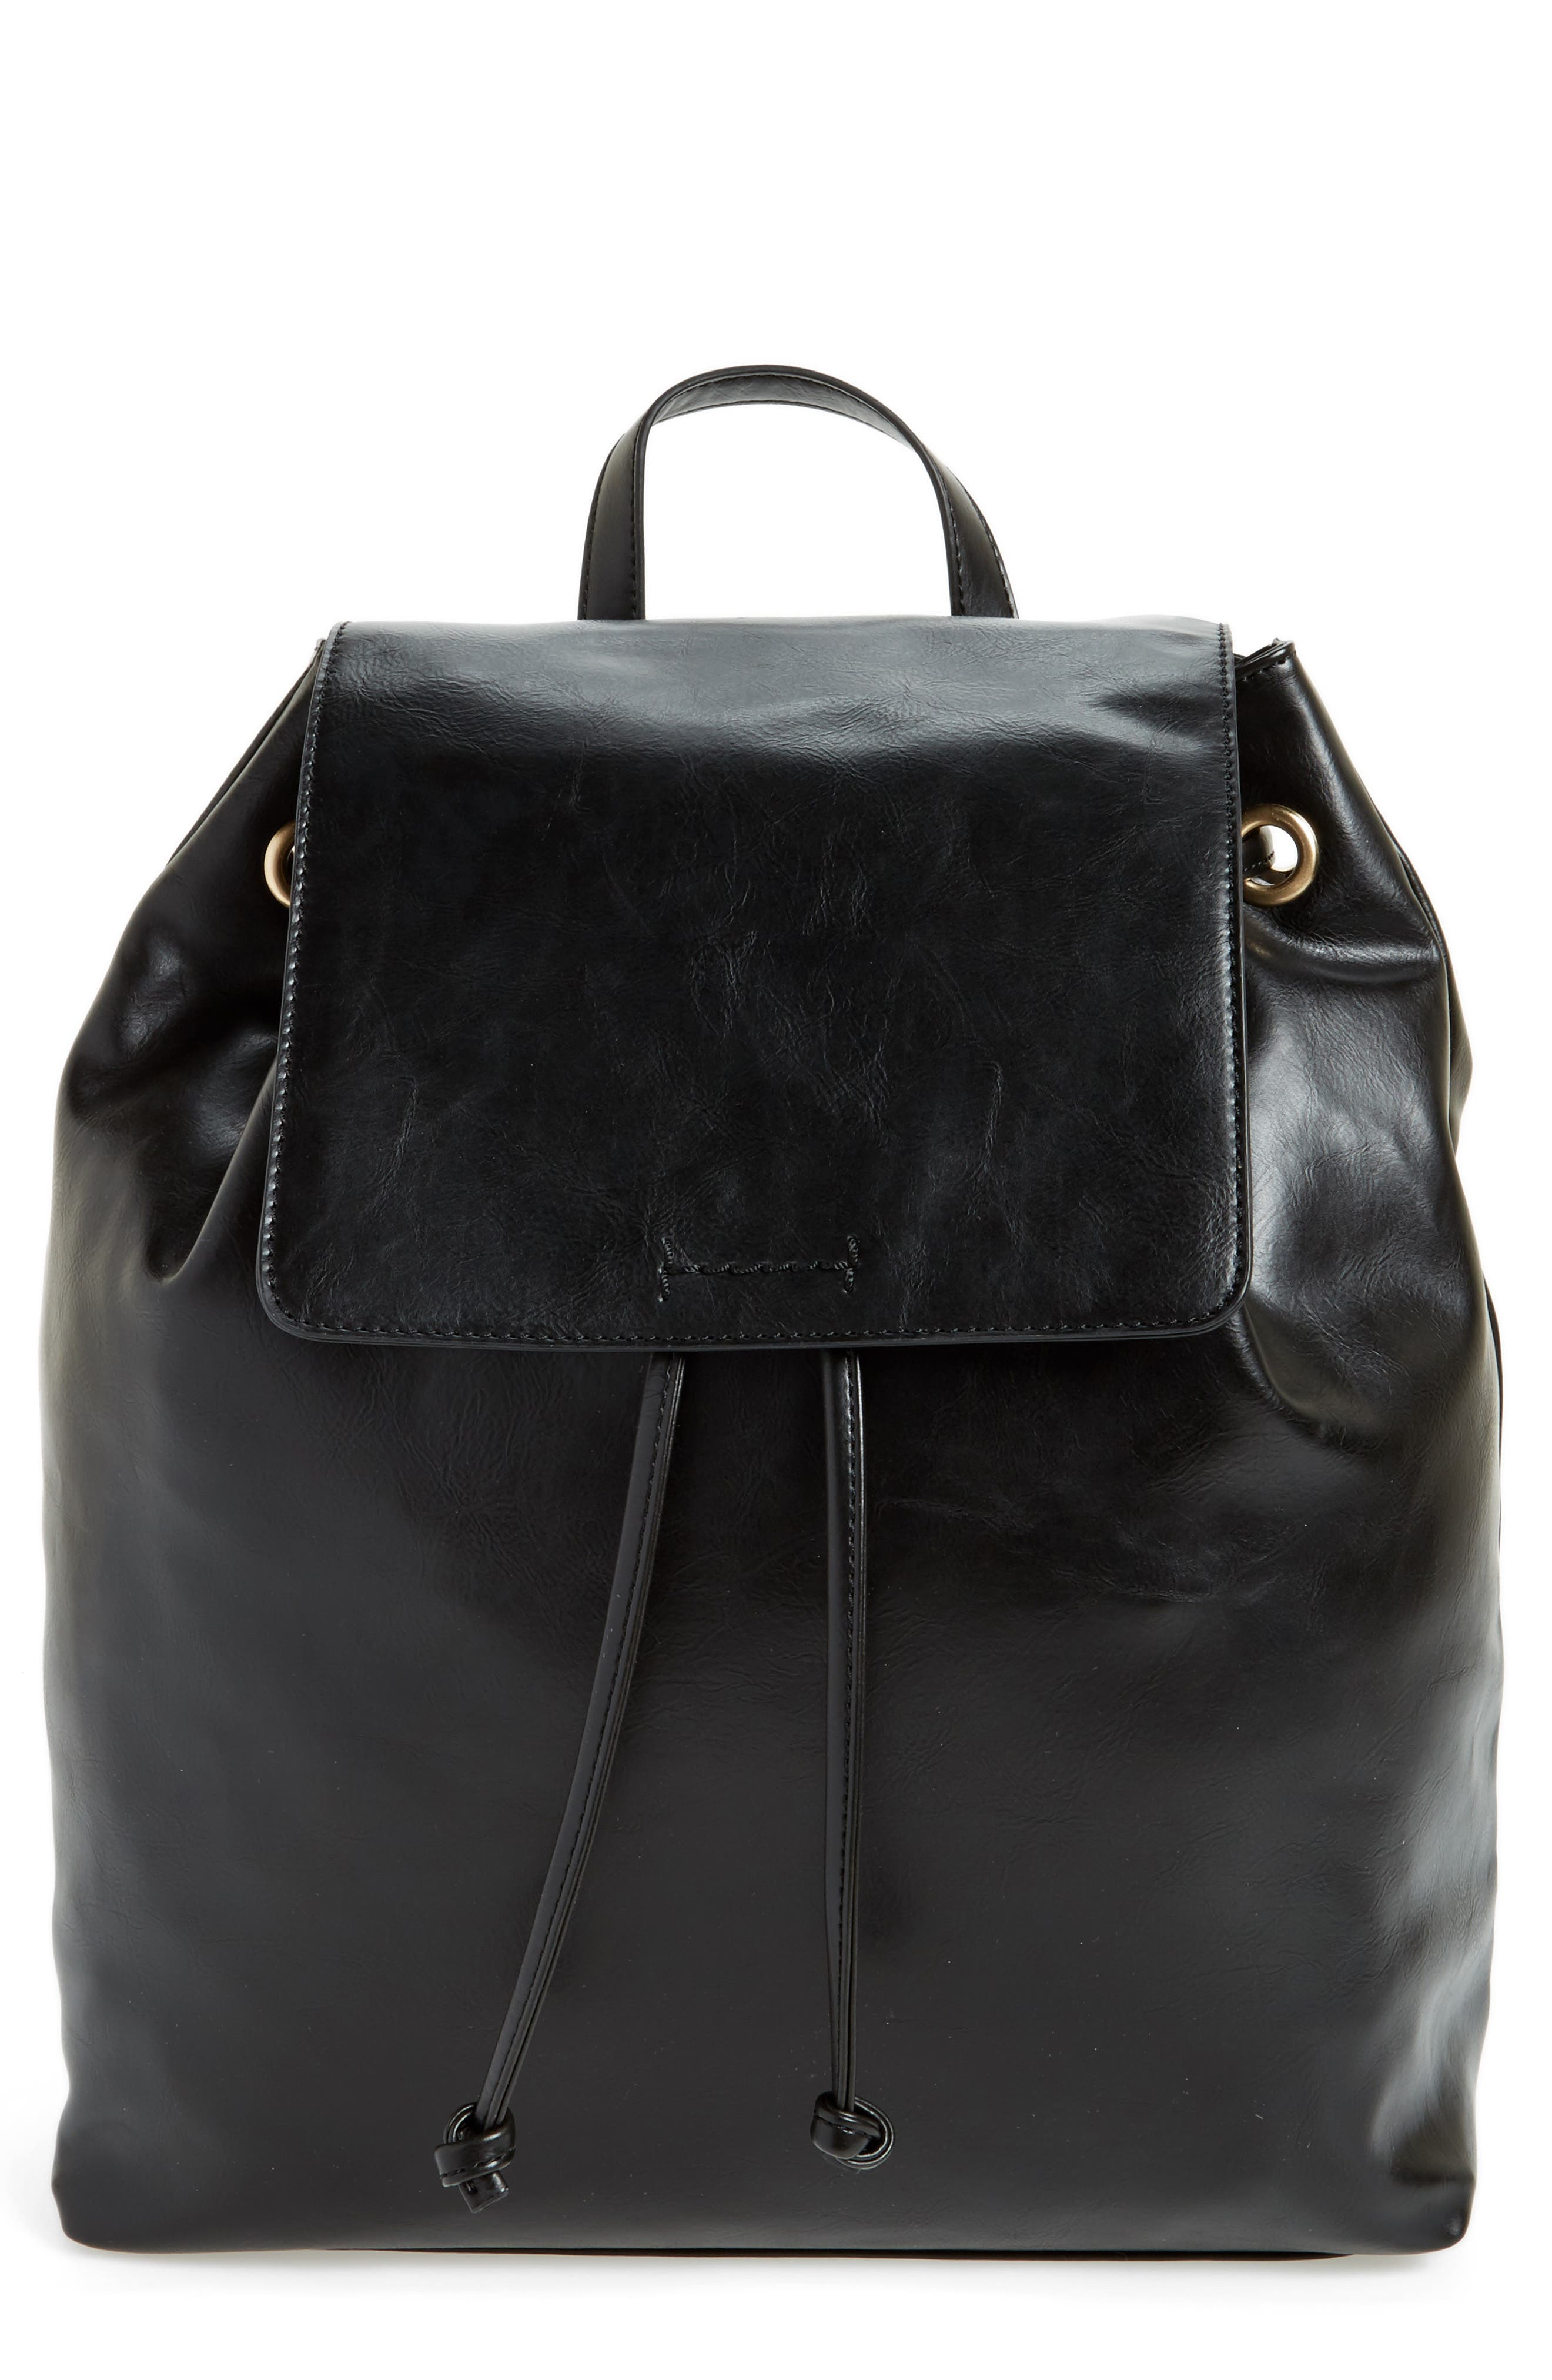 Carly Slouchy Faux Leather Backpack,                             Main thumbnail 1, color,                             001